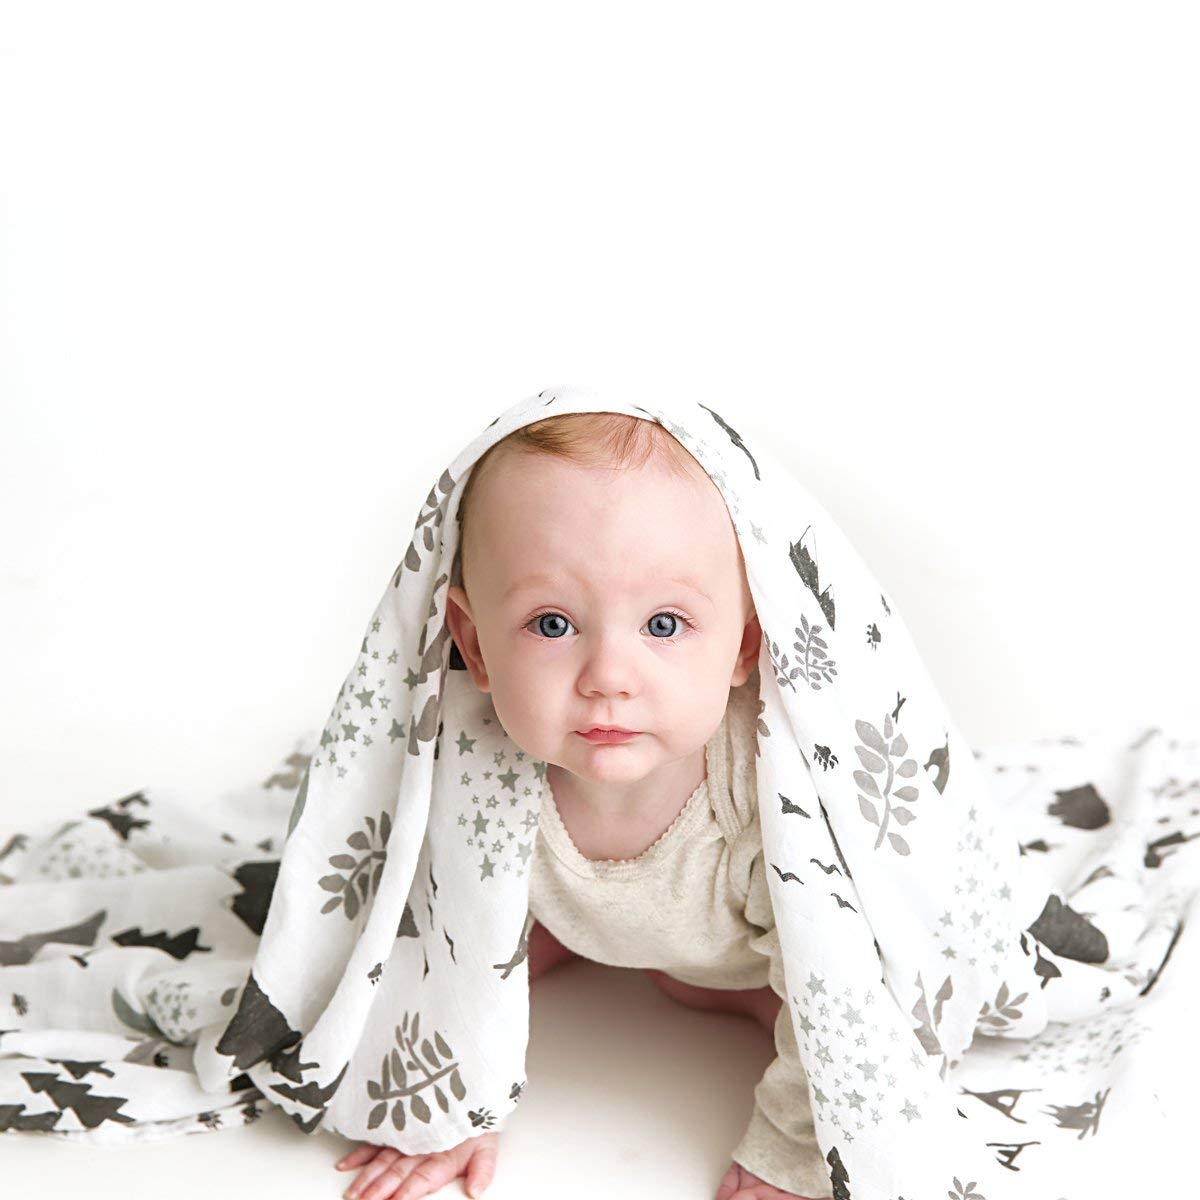 Muslin Swaddle Blanket Set 'Adventurer' Large 47x47 inch | Super Soft Bamboo Blankets | Arrow, Feather and Stars | 3 Pack Baby Shower Gift Bundle of Swaddles for Boys and Girls | 10,000 Wash Warranty by Kids N' Such (Image #3)